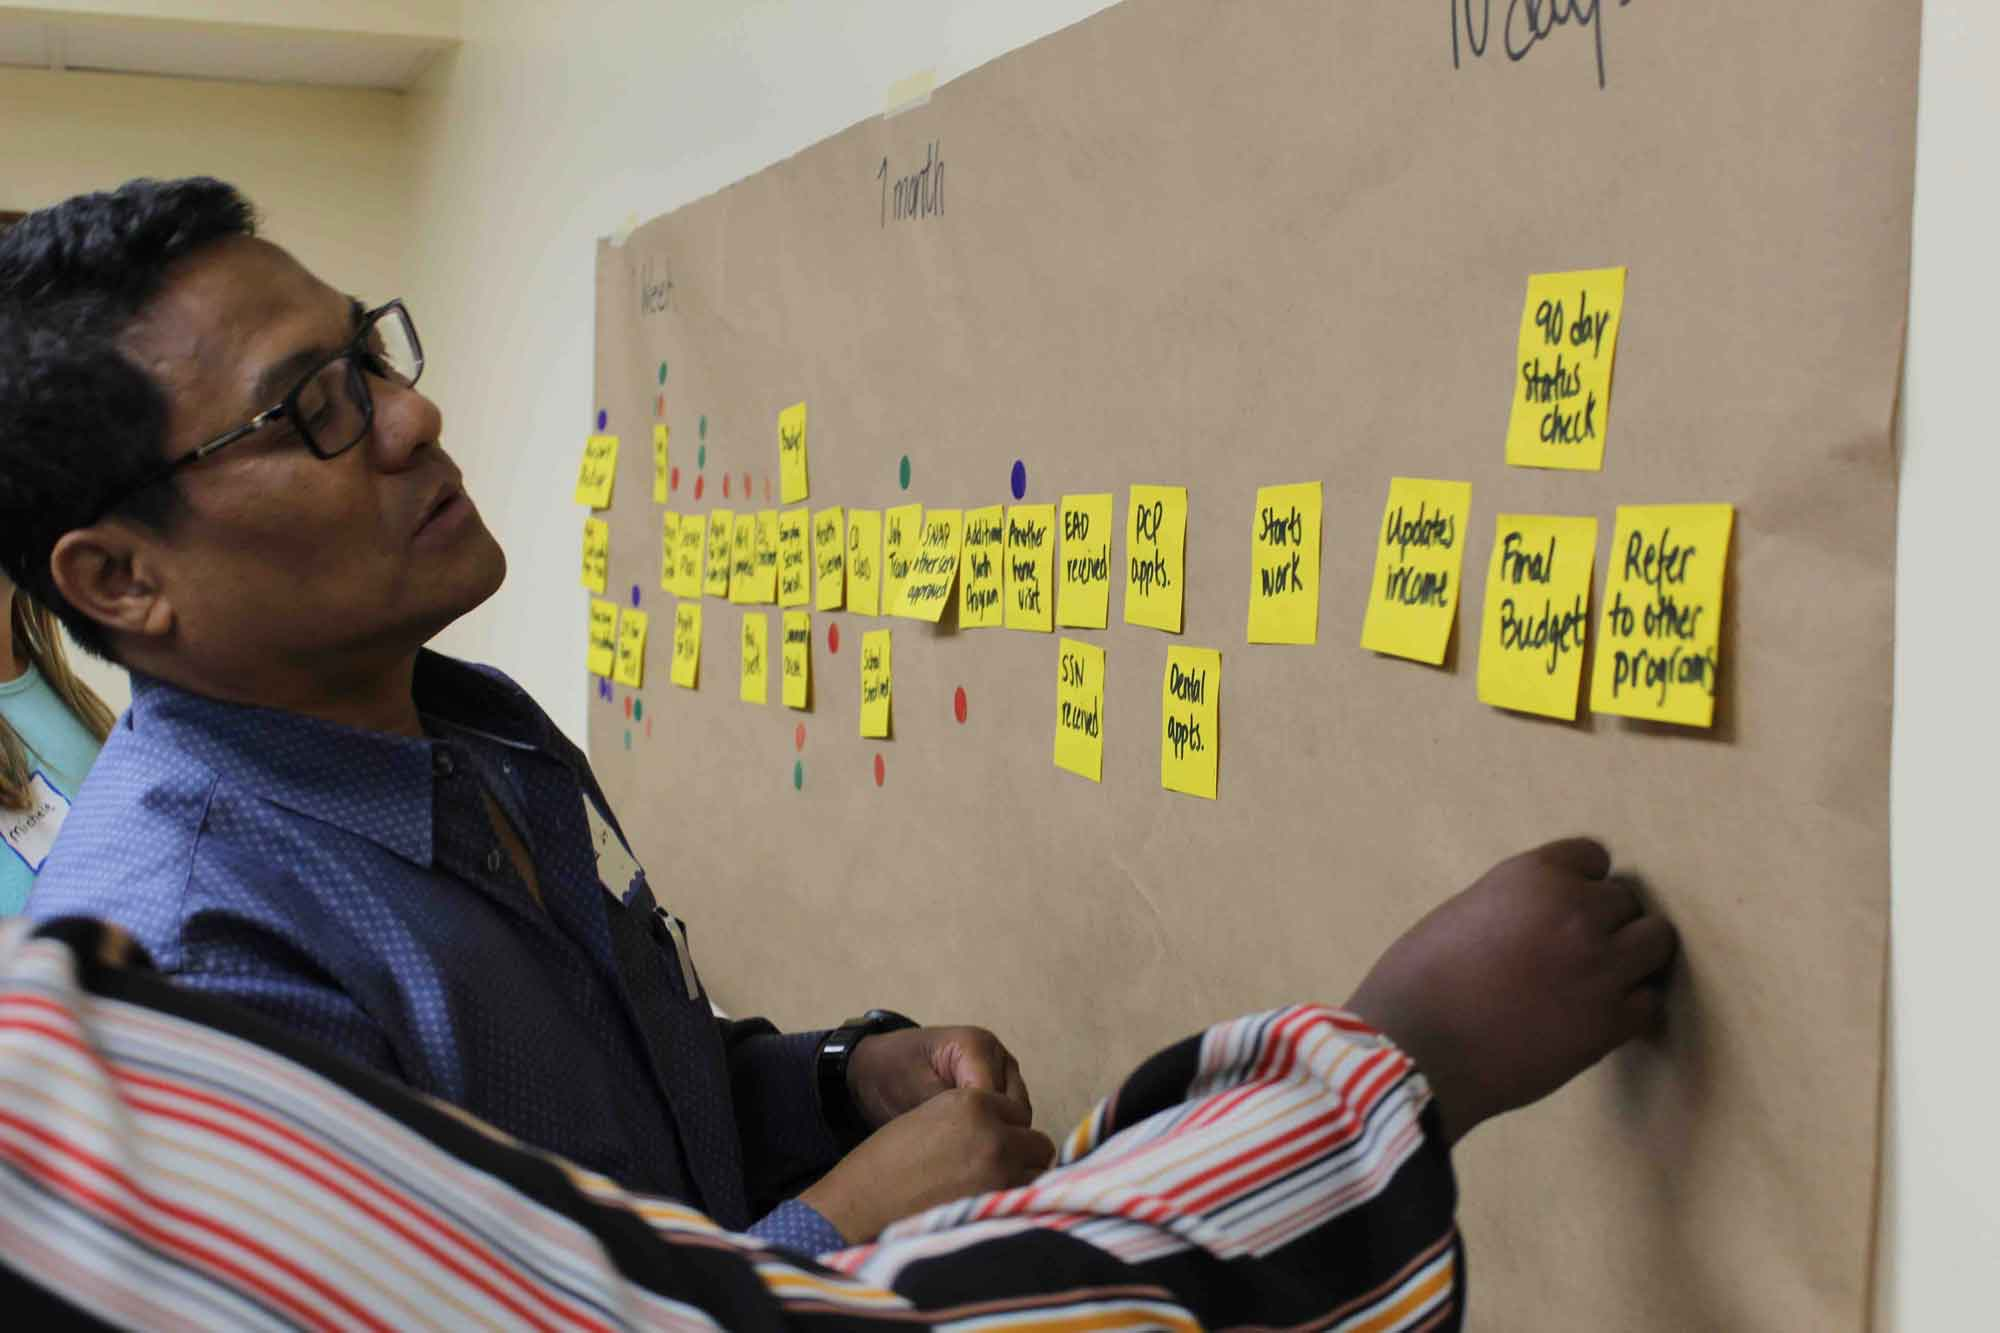 A cultural orientation trainer learning about the refugee resettlement journey at a CORE workshop